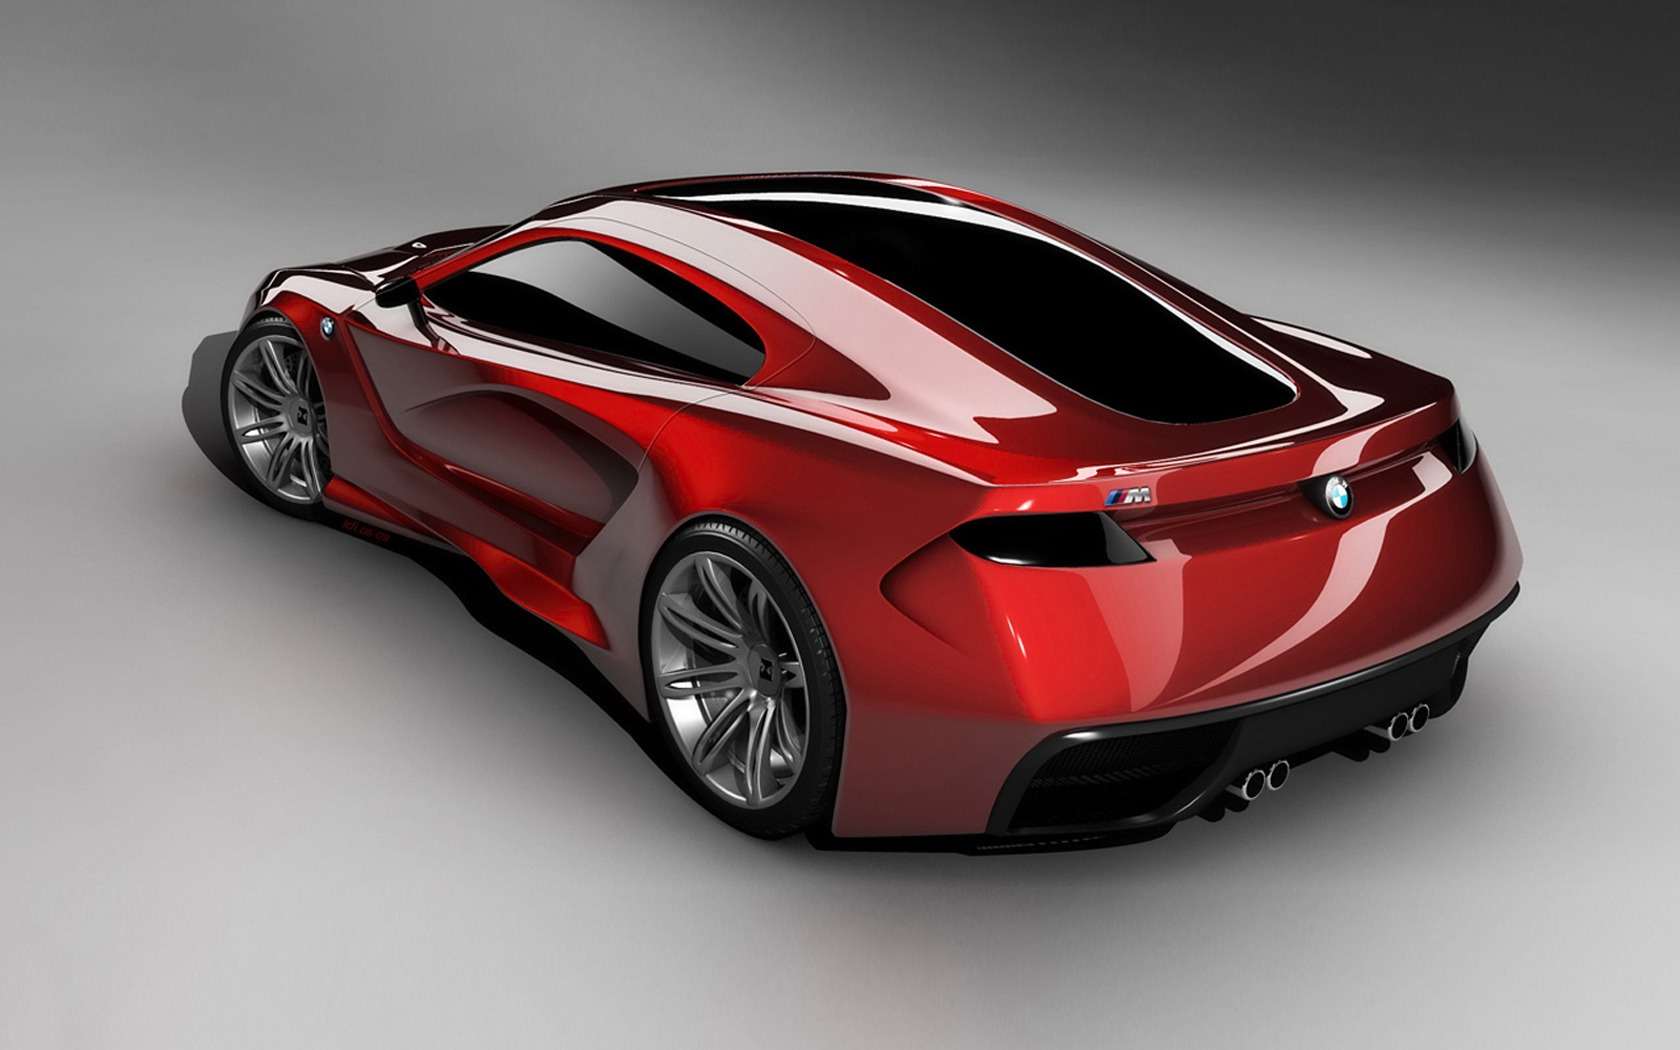 BMW M Concept Design Wallpaper Concept Cars Wallpapers in jpg ...